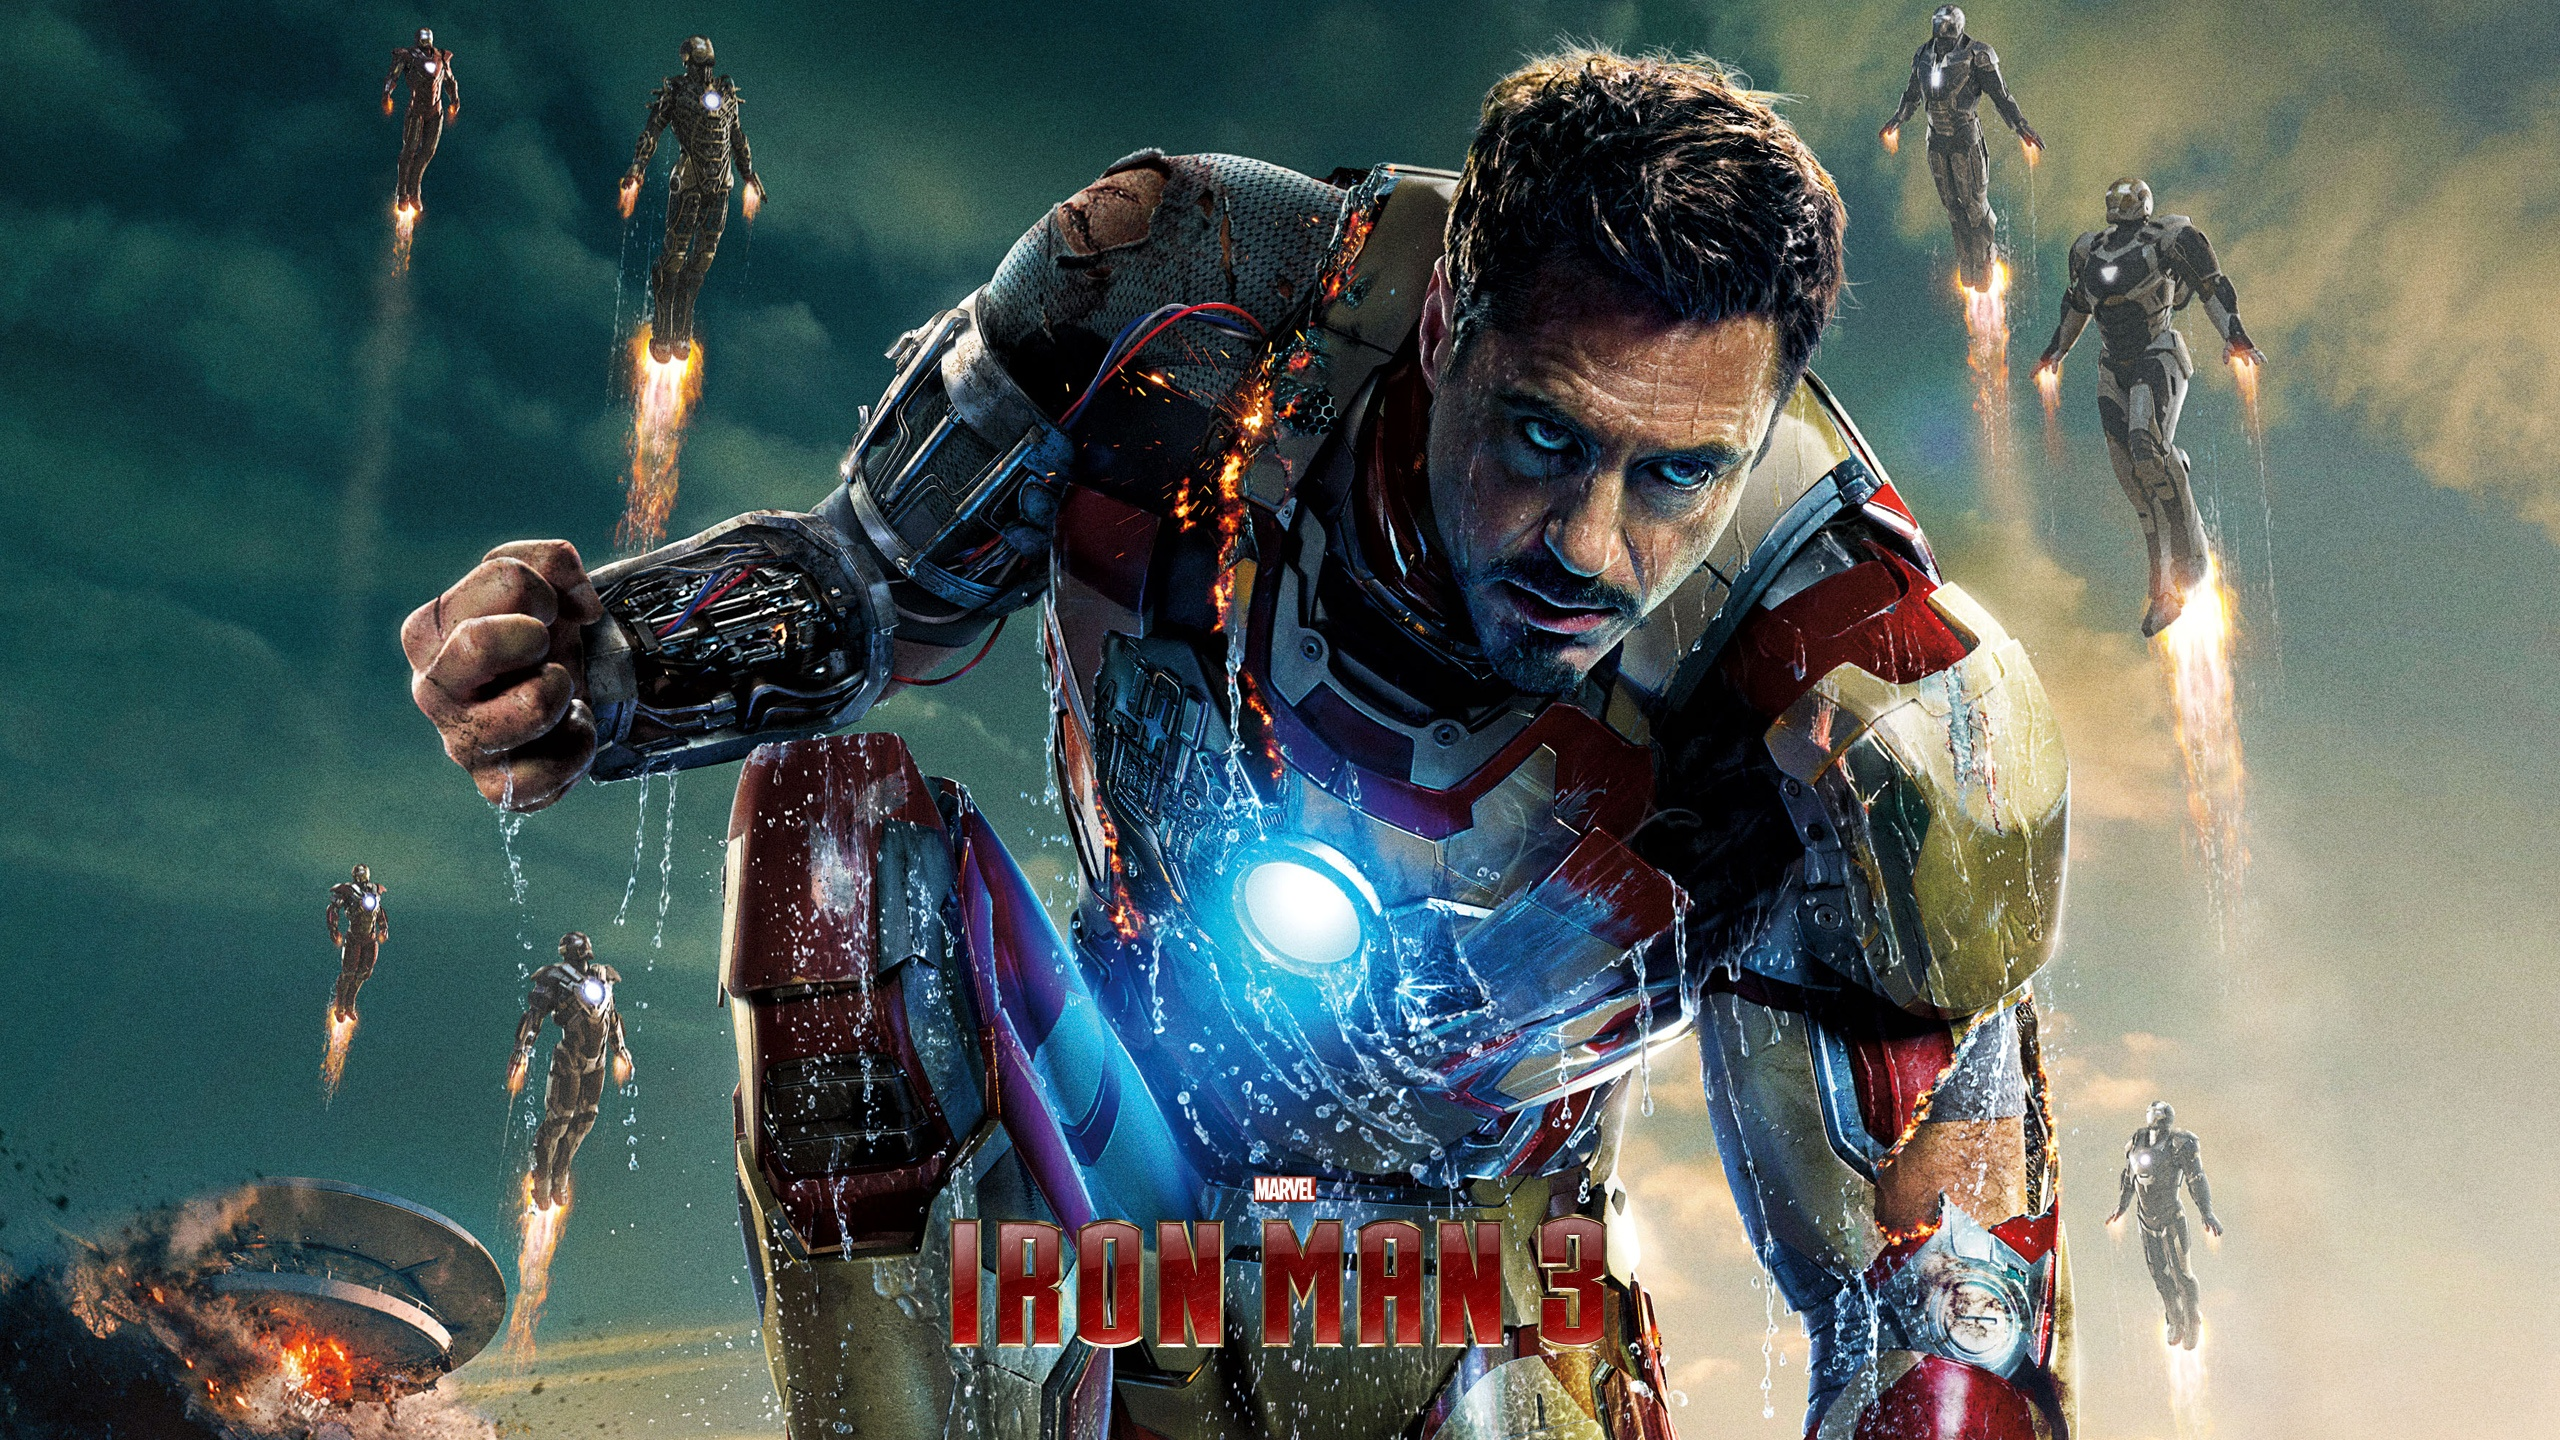 iron man 3 movie wallpapers in jpg format for free download